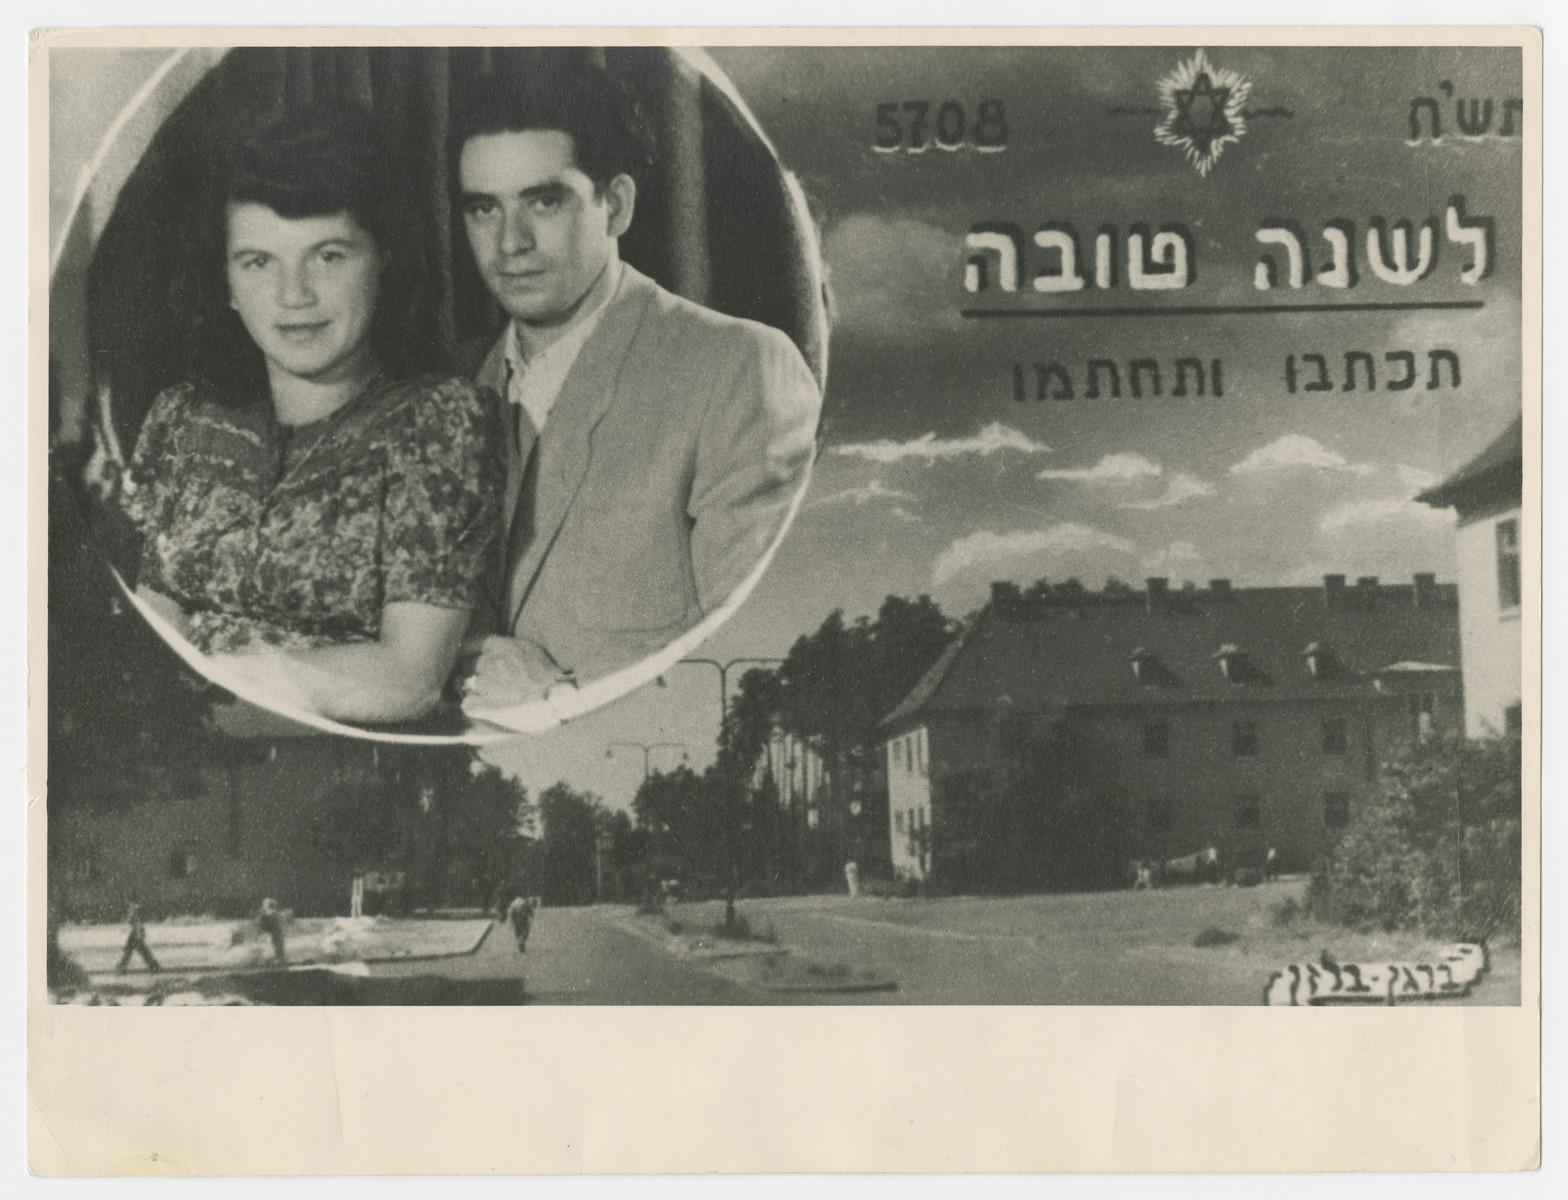 Jewish New Years card from Anna and David Rosenzweig showing their portrait and a view of the Bergen-Belsen displaced persons camp.